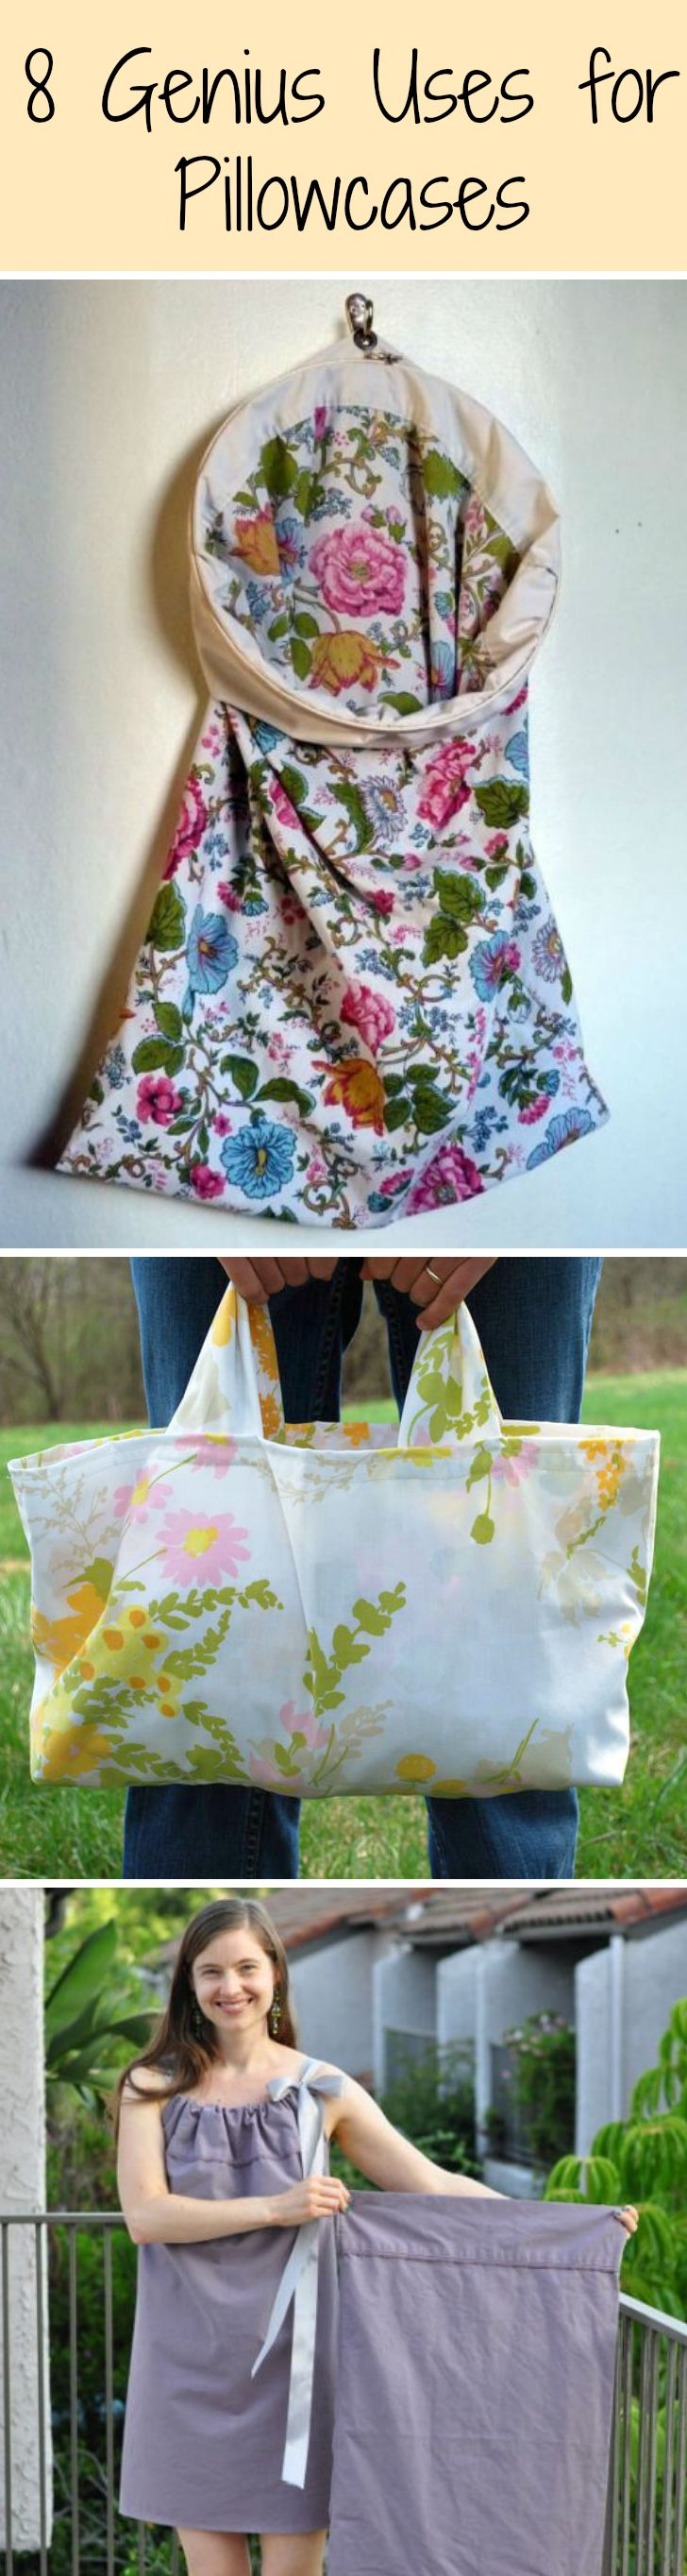 Steal a few from your linen closet to use as a laundry bag, tote, dress...